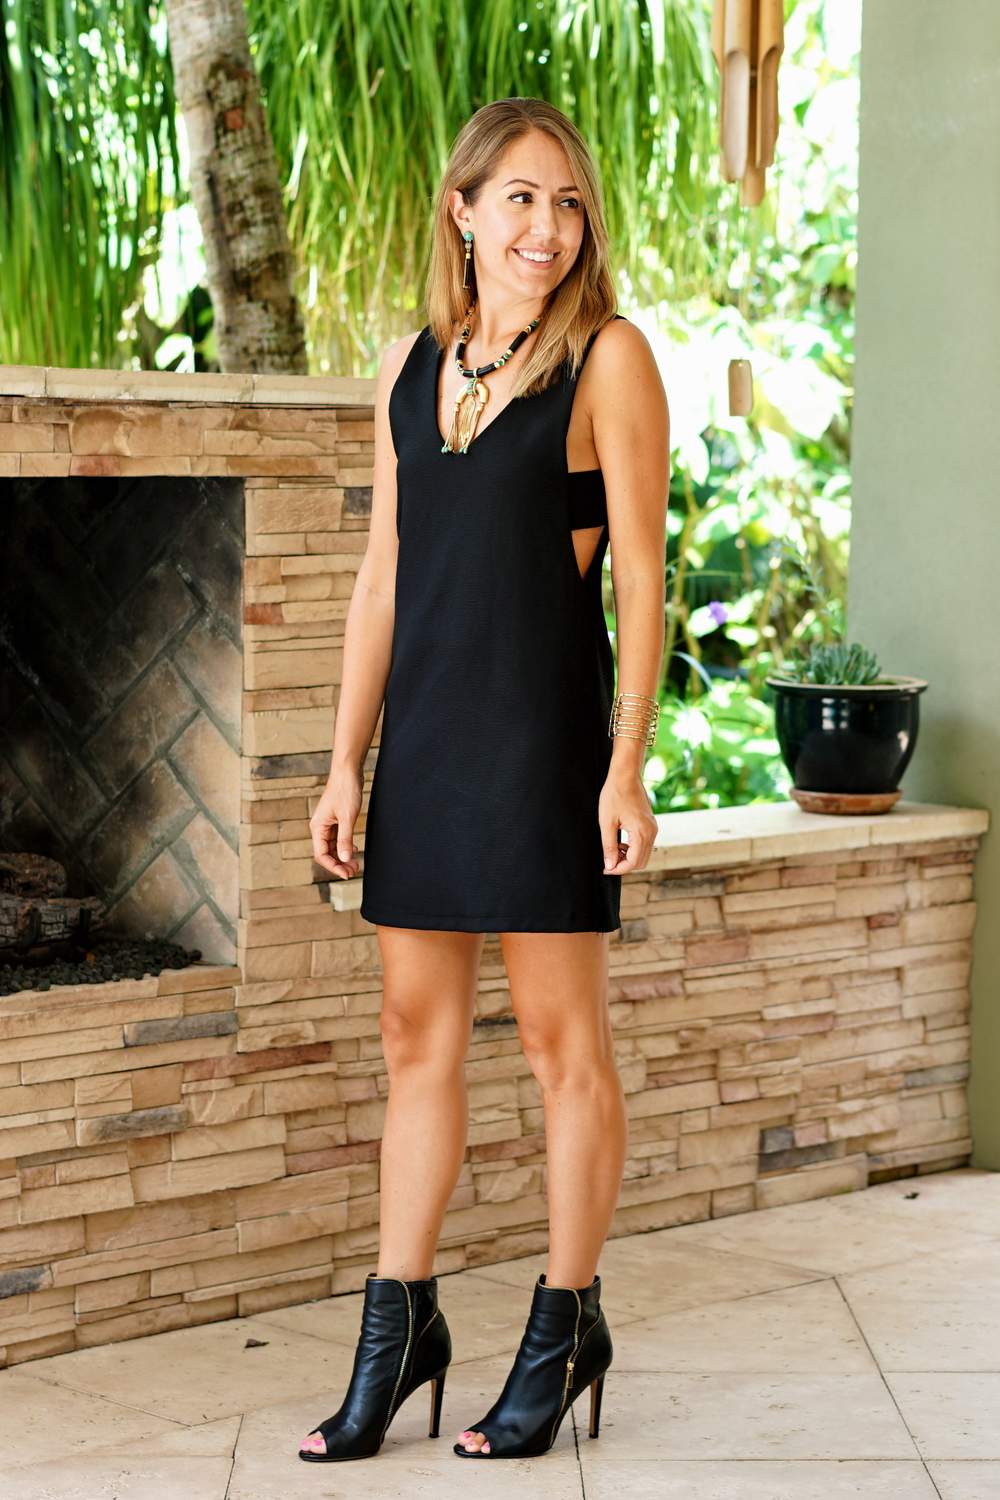 Black cut out dress and peep toe booties